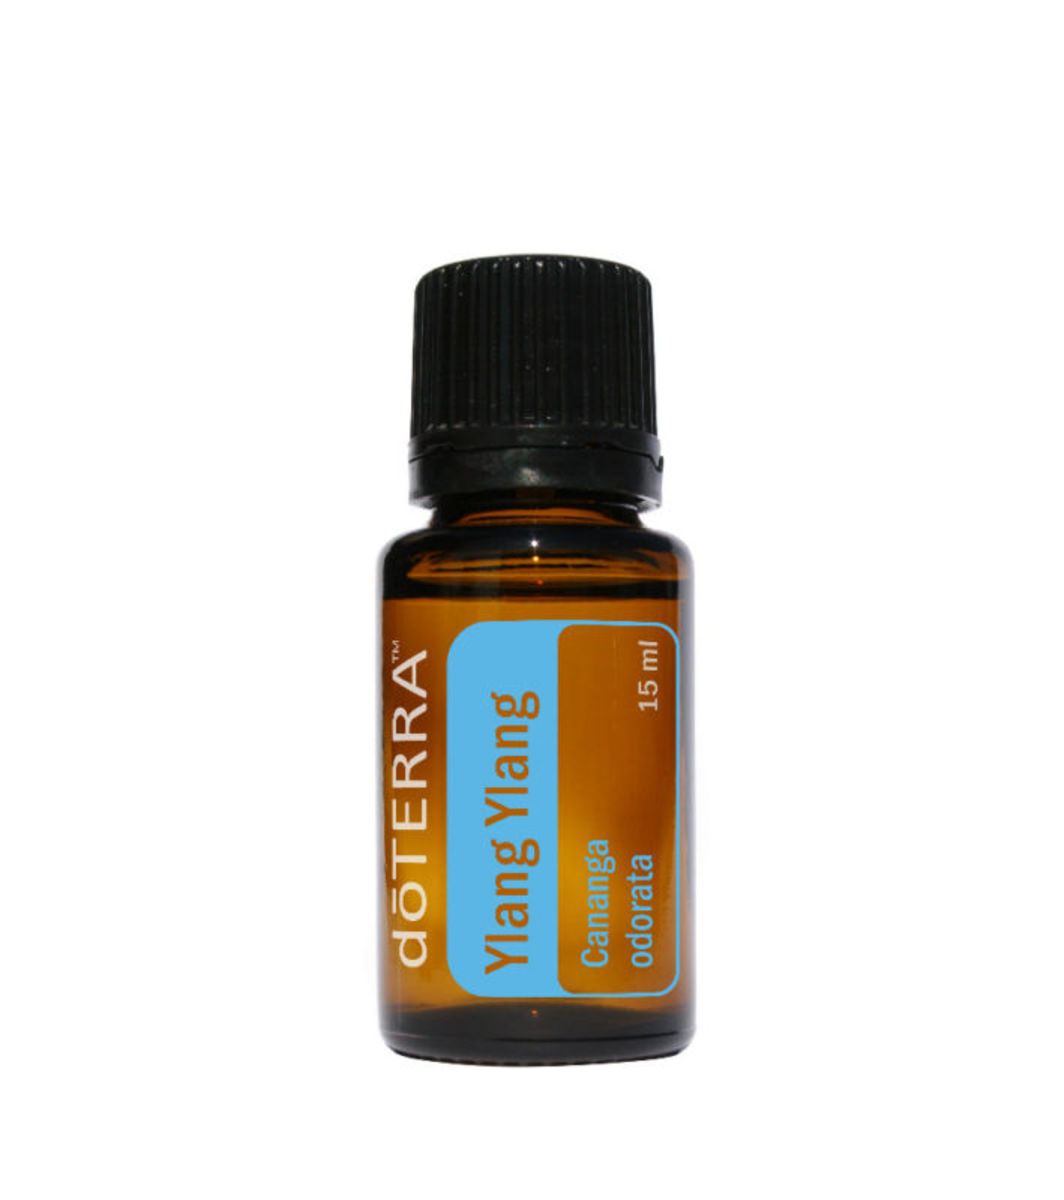 doTERRA's Certified Pure Therapeutic Grade Ylang Ylang oil